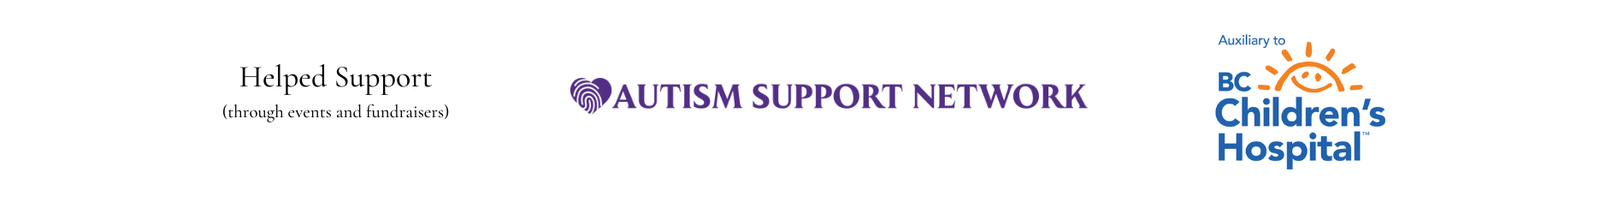 Worked alongside Autism Support Network and BC Children's Hospital